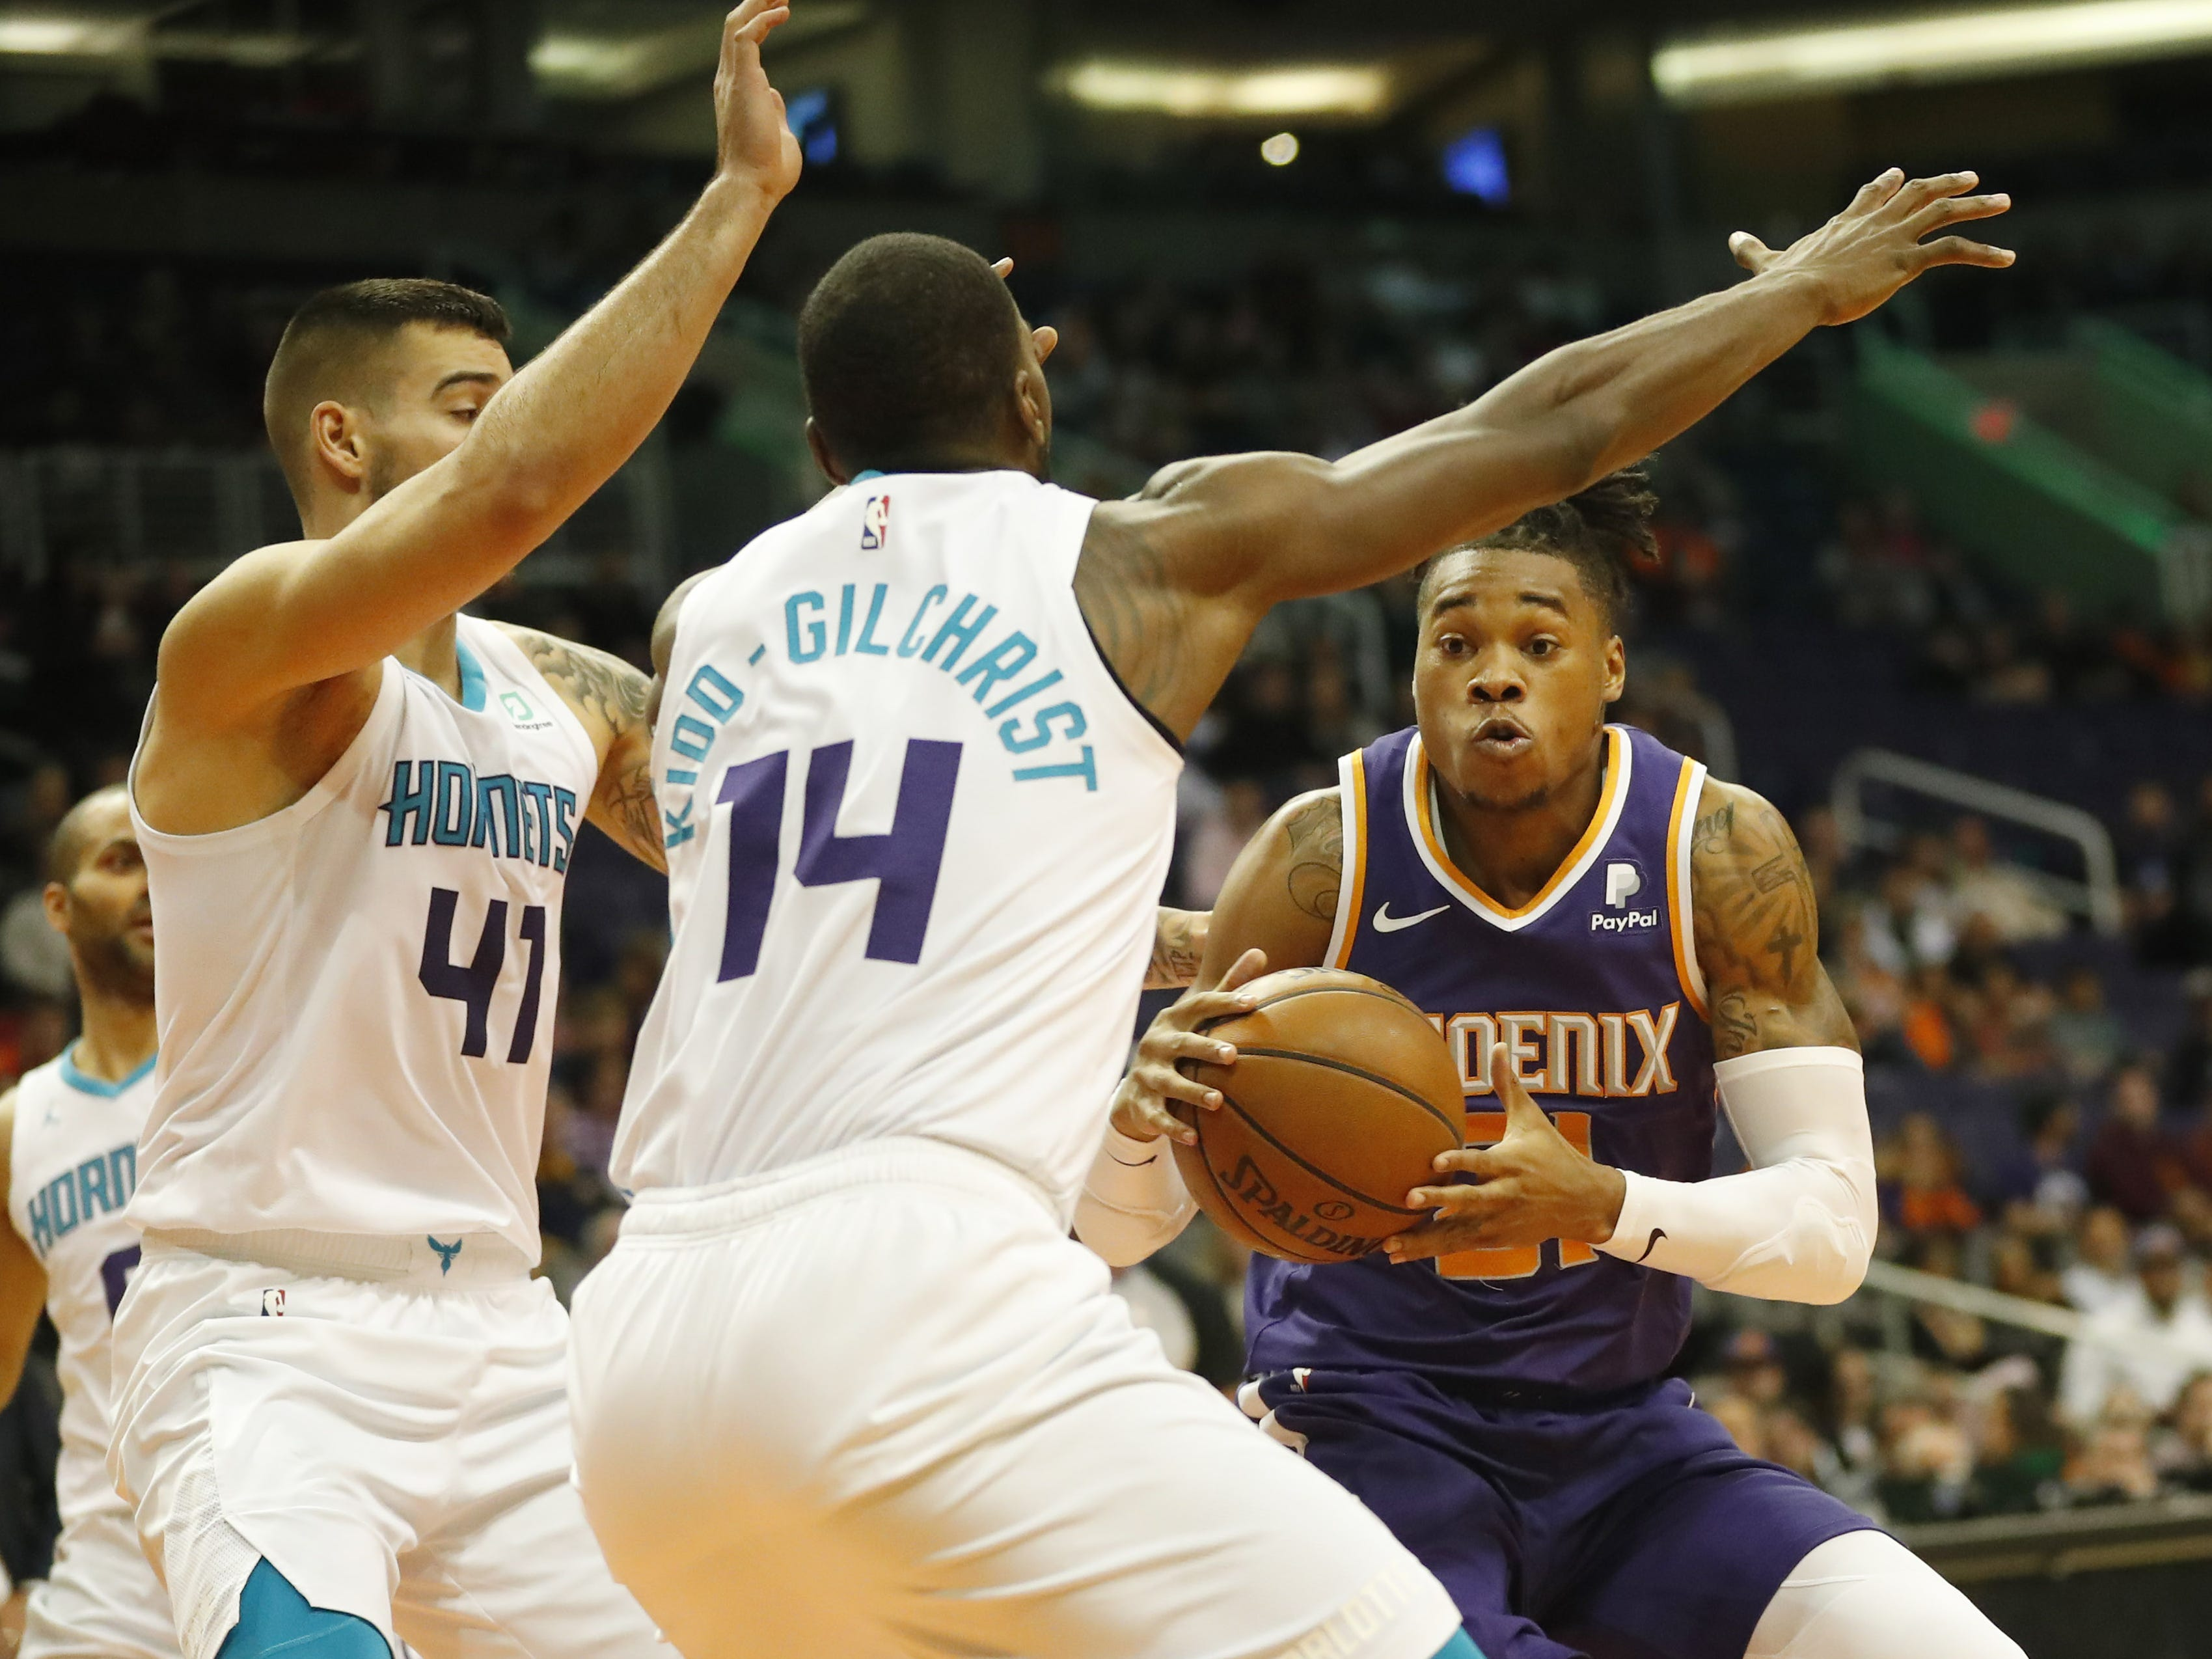 Phoenix Suns forward/center Richaun Holmes (21) puts a move on Charlotte Hornets center Willy Hernangomez (41) and forward Michael Kidd-Gilchrist (14) during the first quarter in Phoenix January 6, 2019.